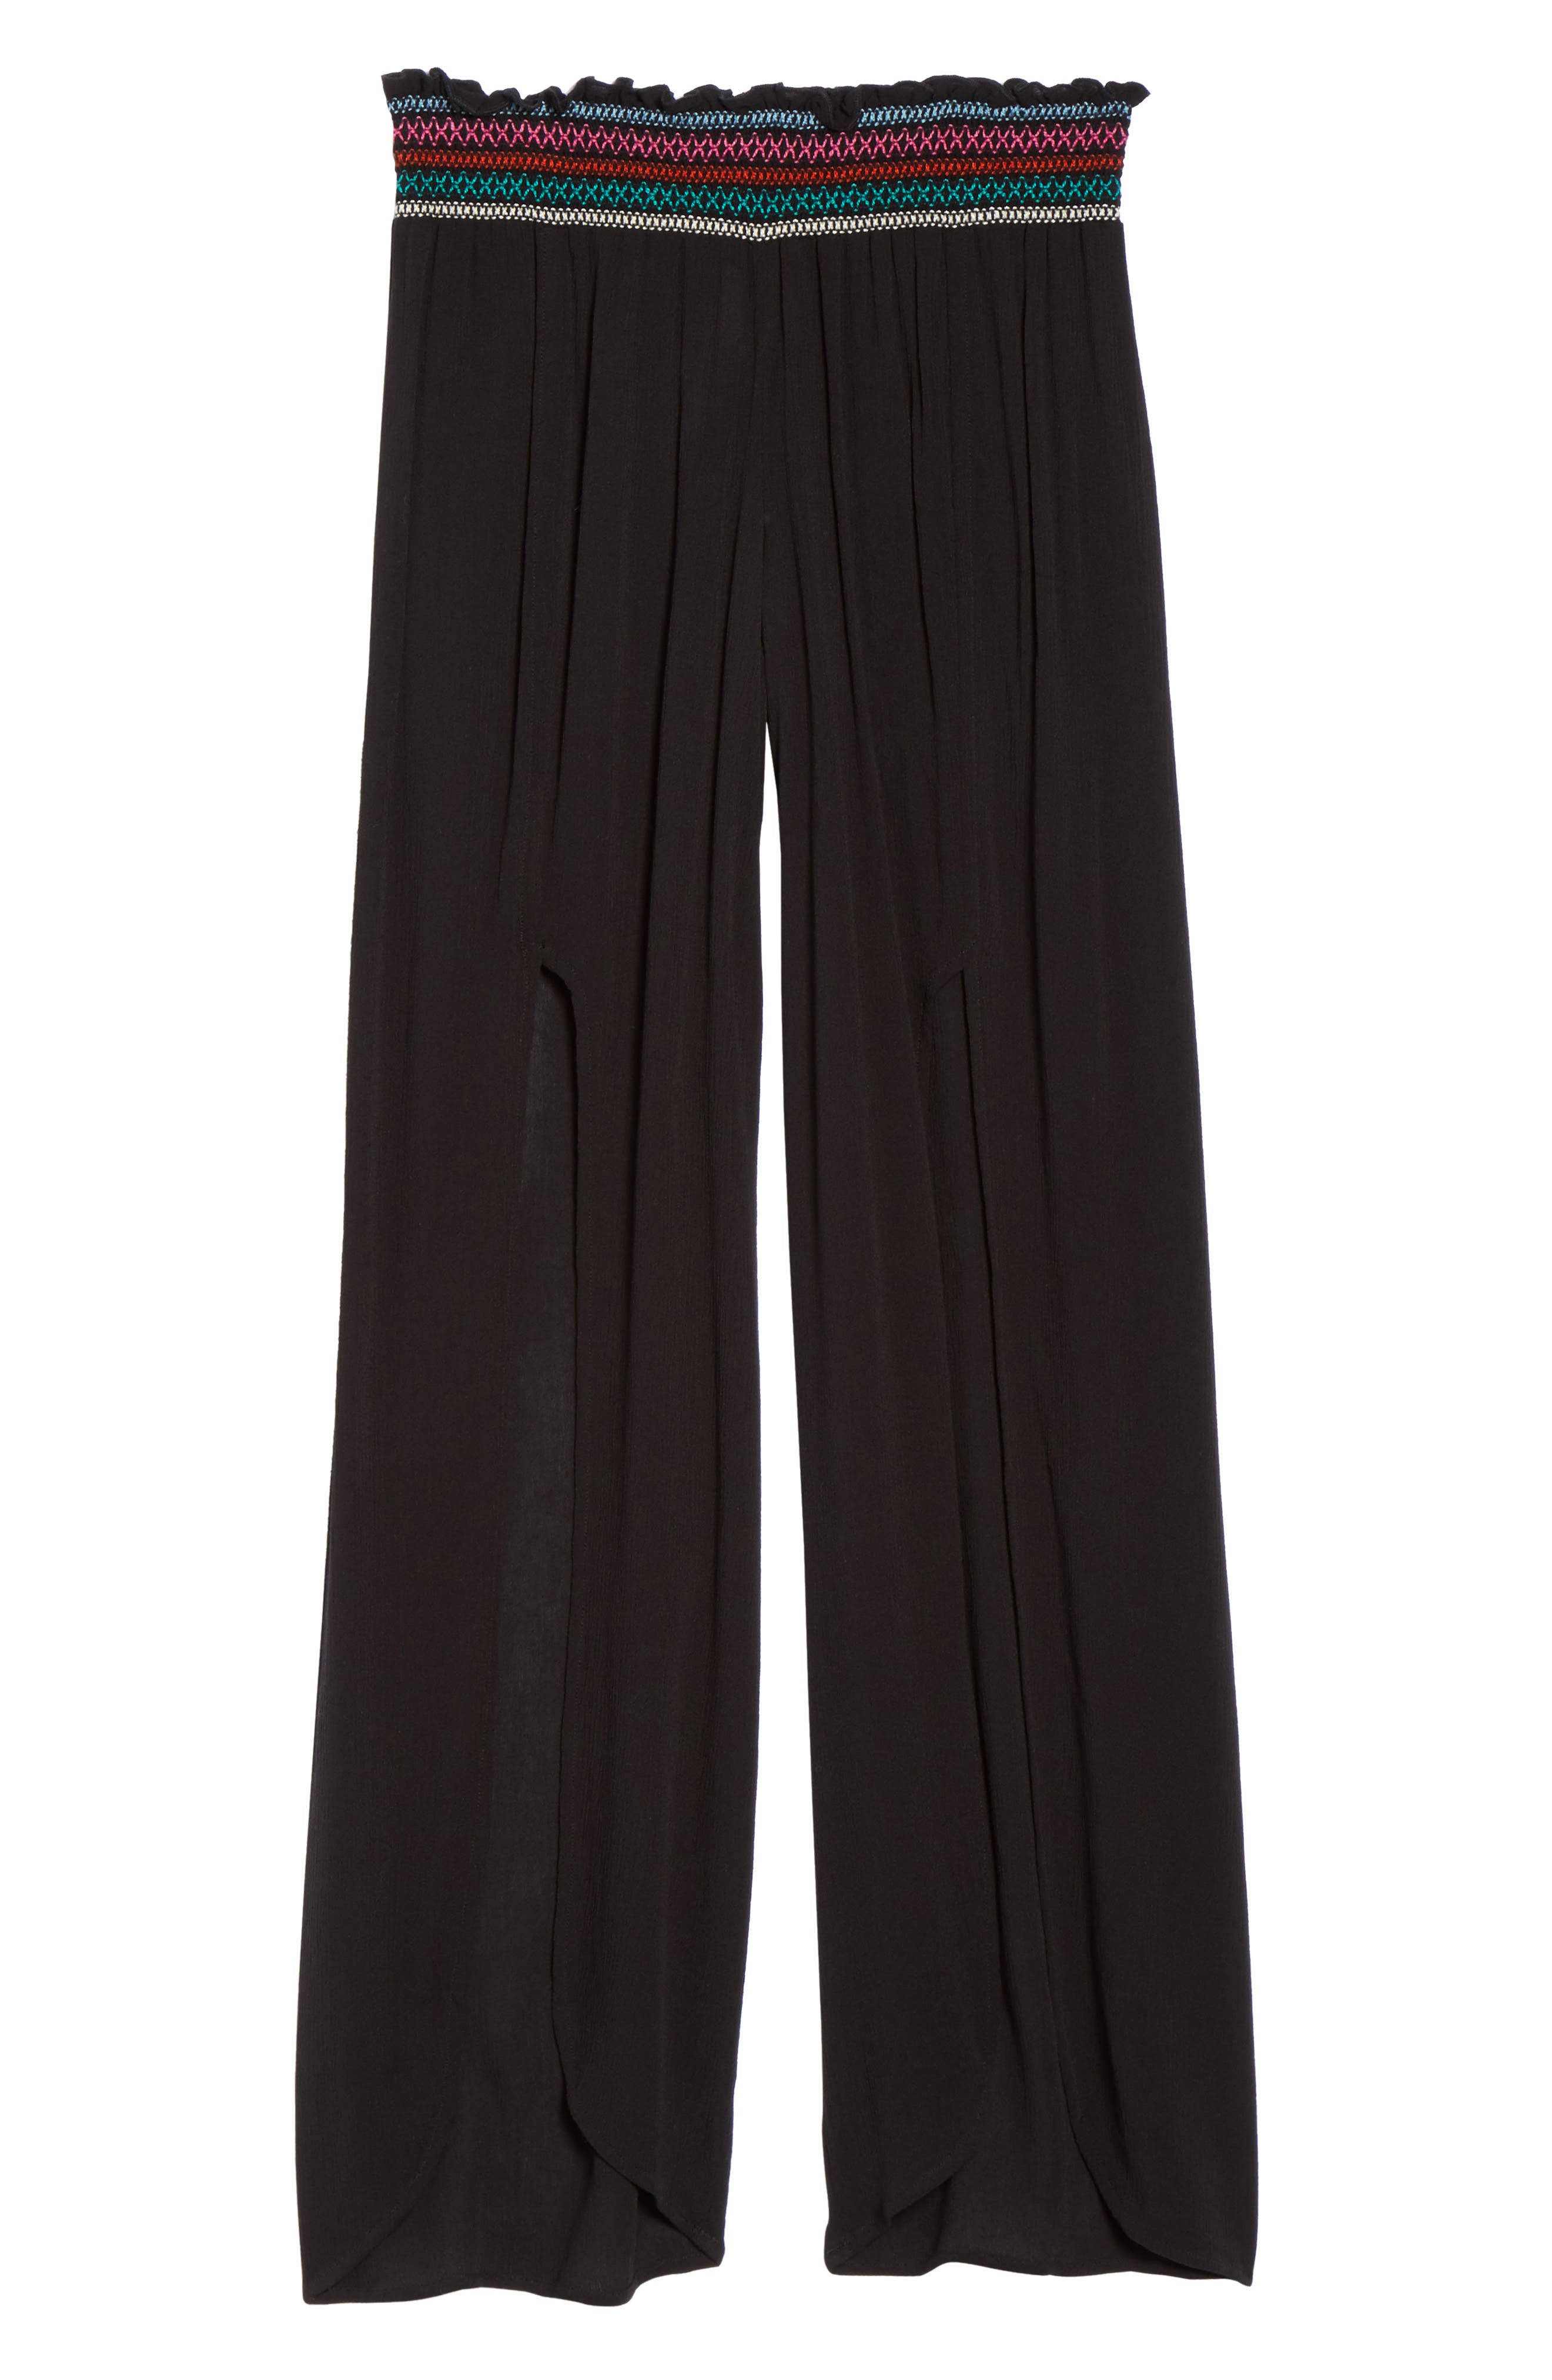 Crystal Cove Cover-Up Pants,                             Alternate thumbnail 6, color,                             Black